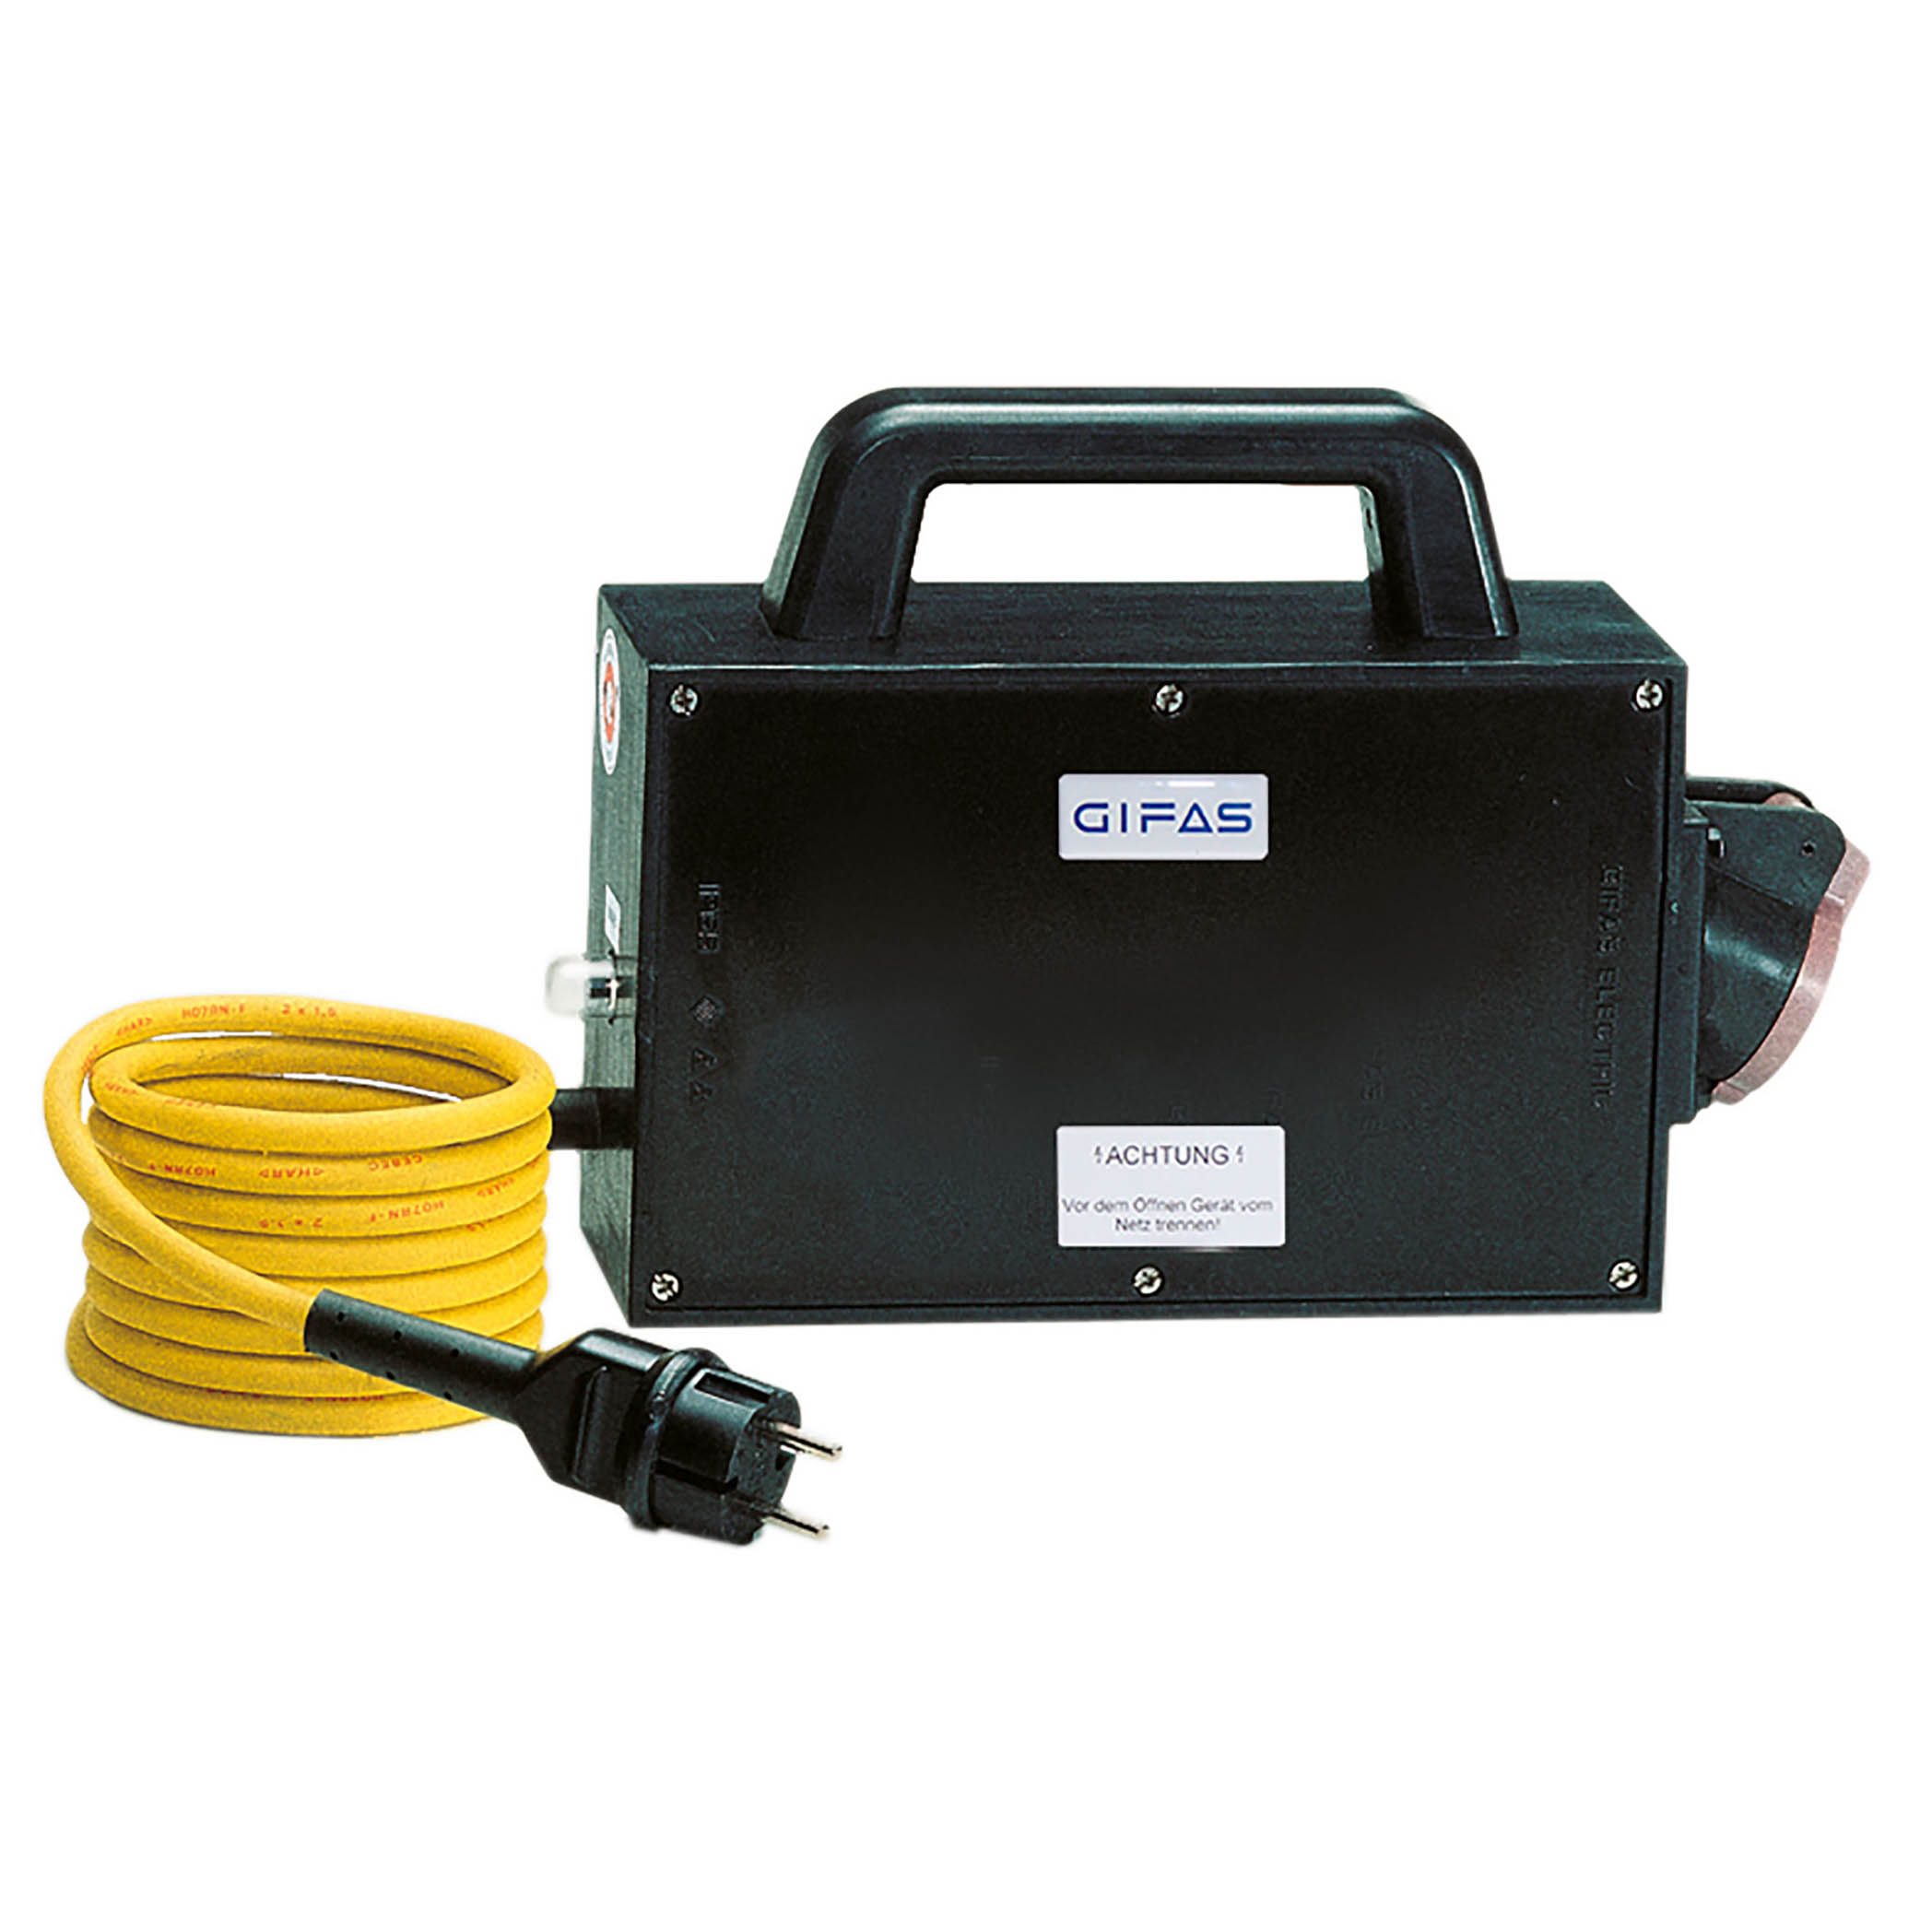 GIFAS Solid Rubber Mobile Safety Transformer Type 2516 - 301485, 208768